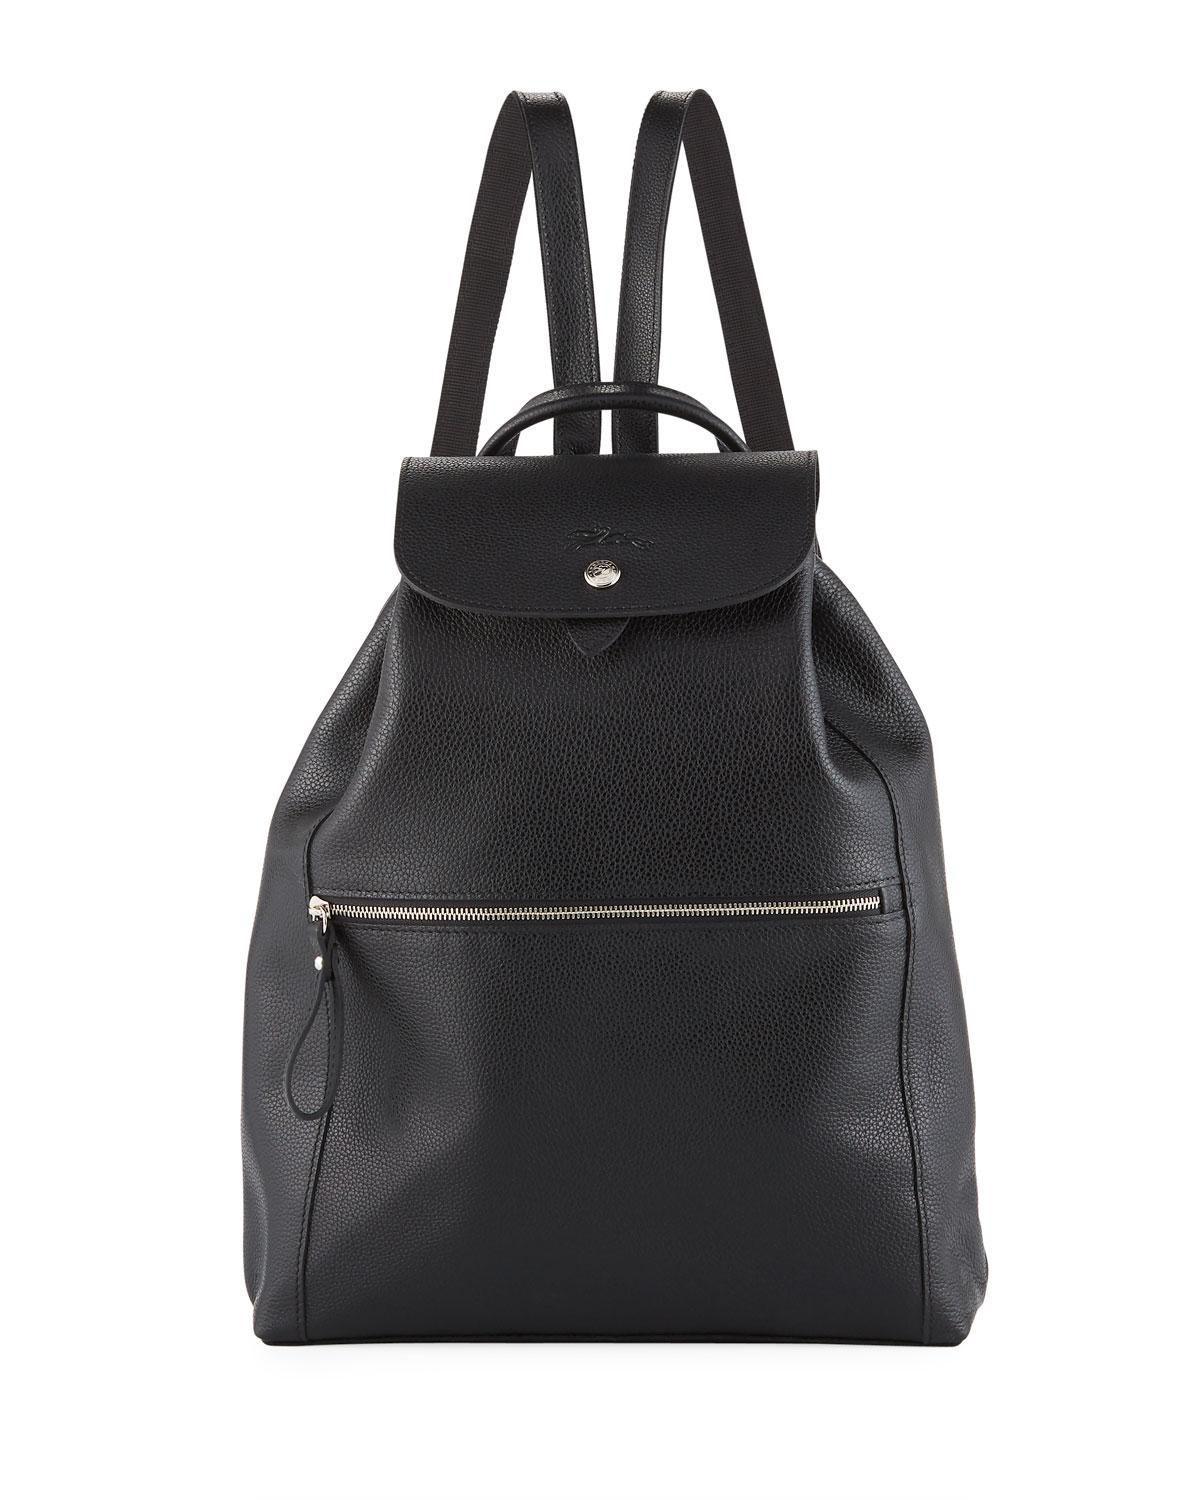 6606f9477689 Lyst - Longchamp Veau Leather Backpack - in Black - Save 19%